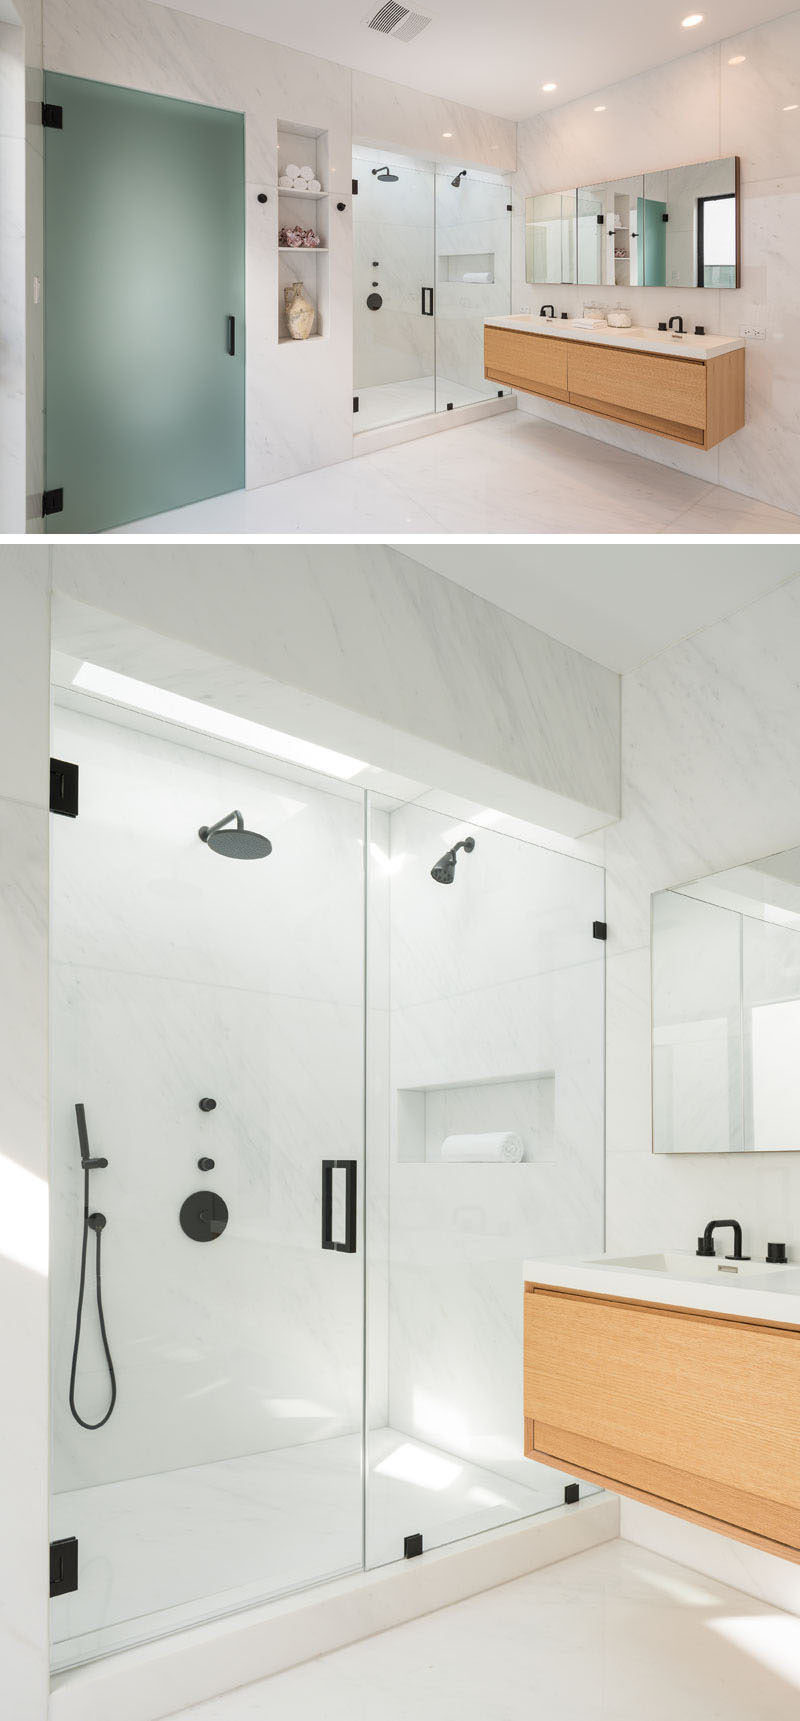 In this modern ensuite bathroom is a toilet hidden behind a frosted glass door, and a glass enclosed walk-in shower.#MasterBathroom #BathroomDesign